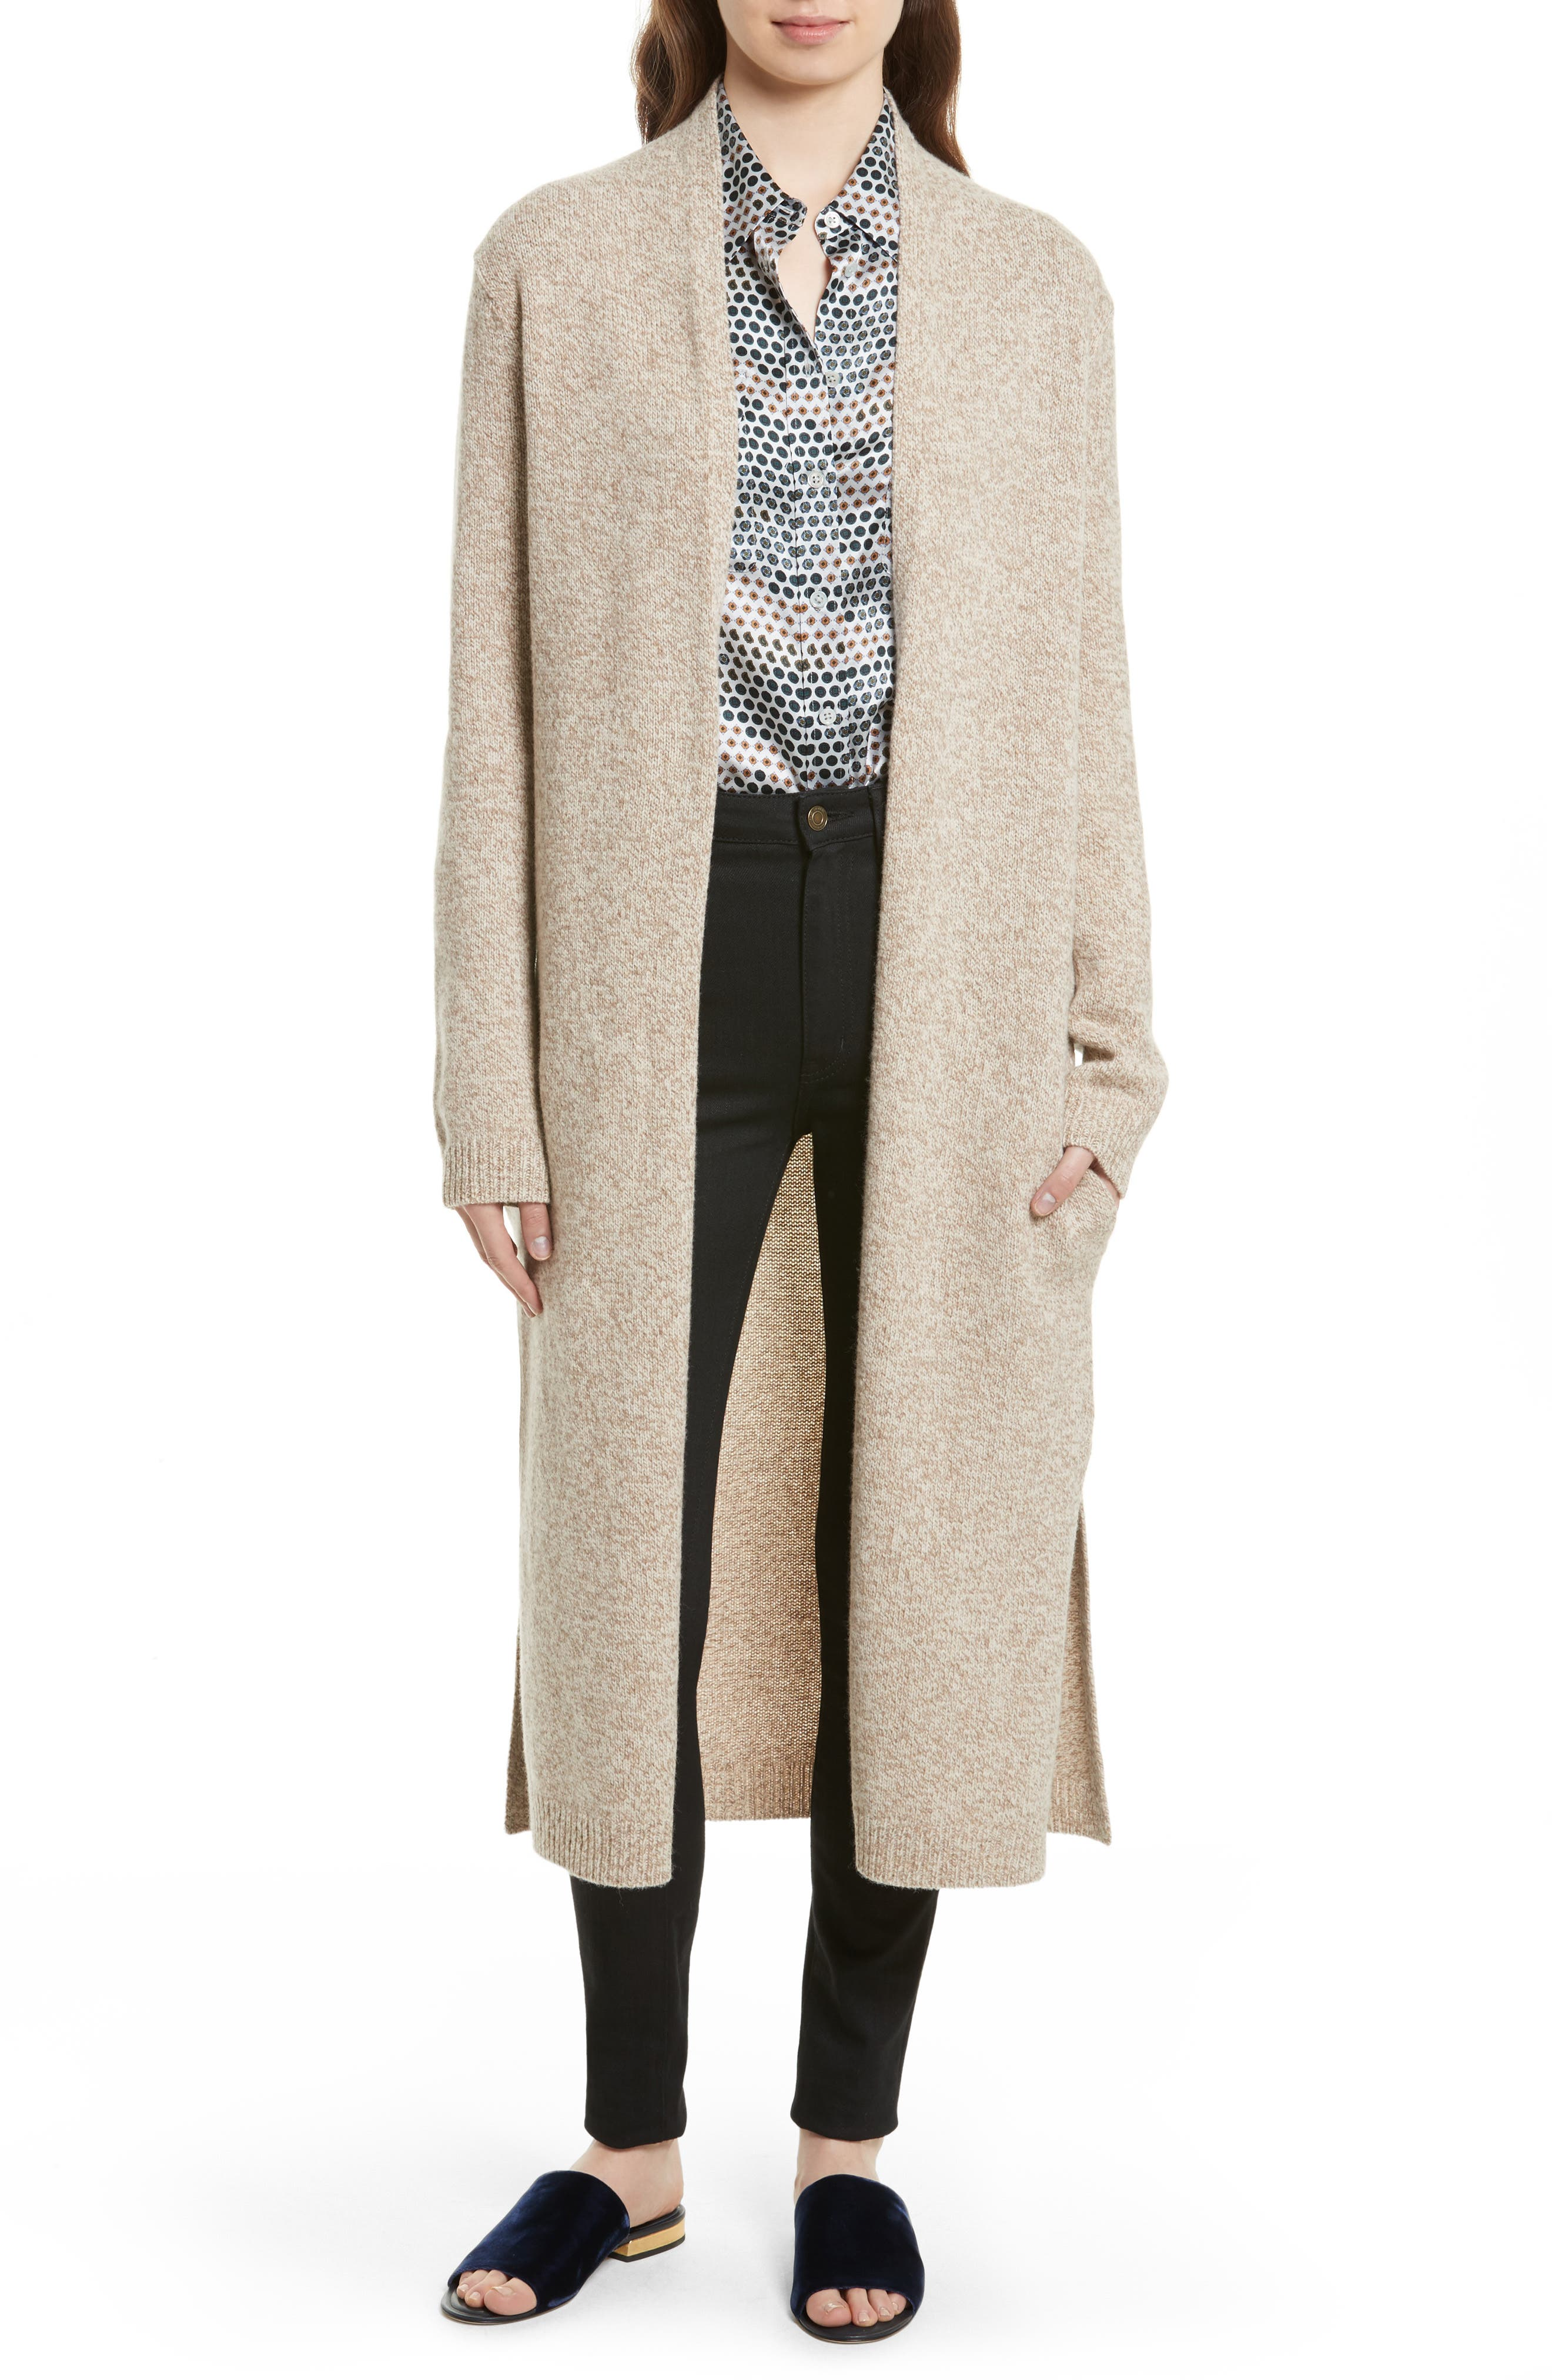 Thoren Long Wool Cardigan,                             Main thumbnail 1, color,                             285